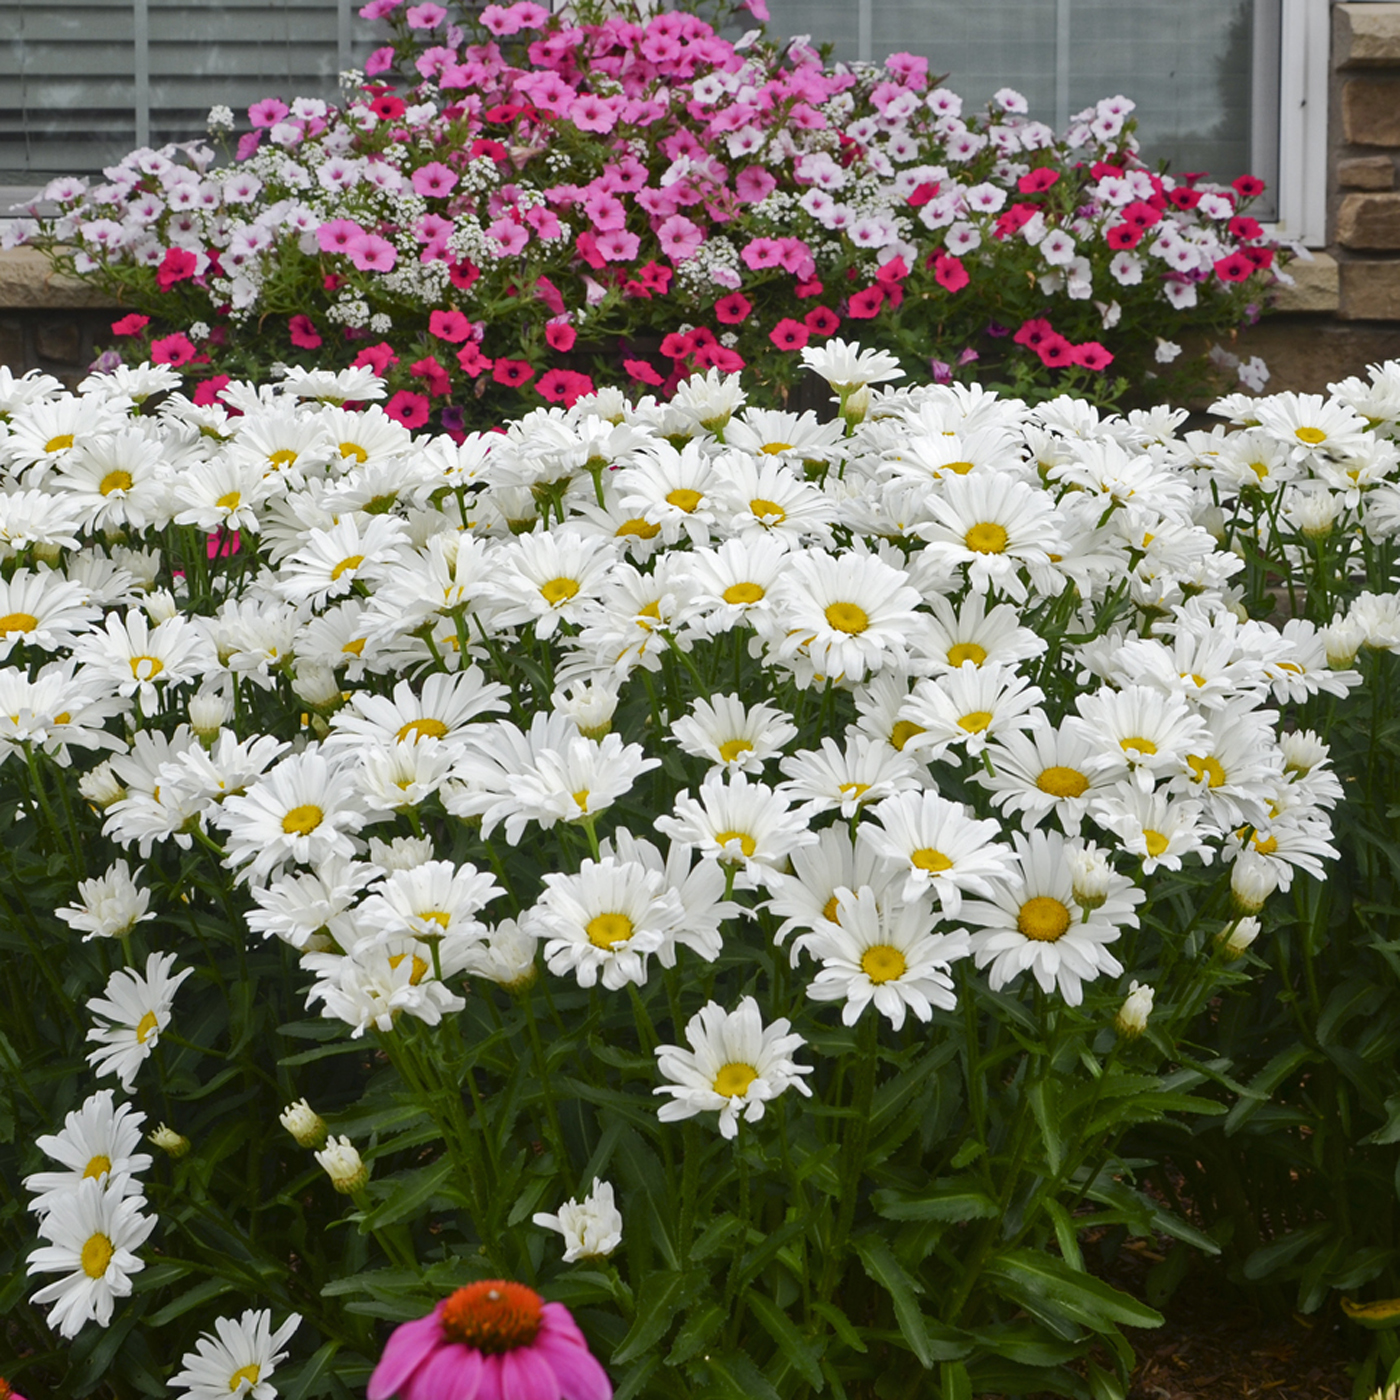 Daisy Fleabane. Growing up, this was always a favorite